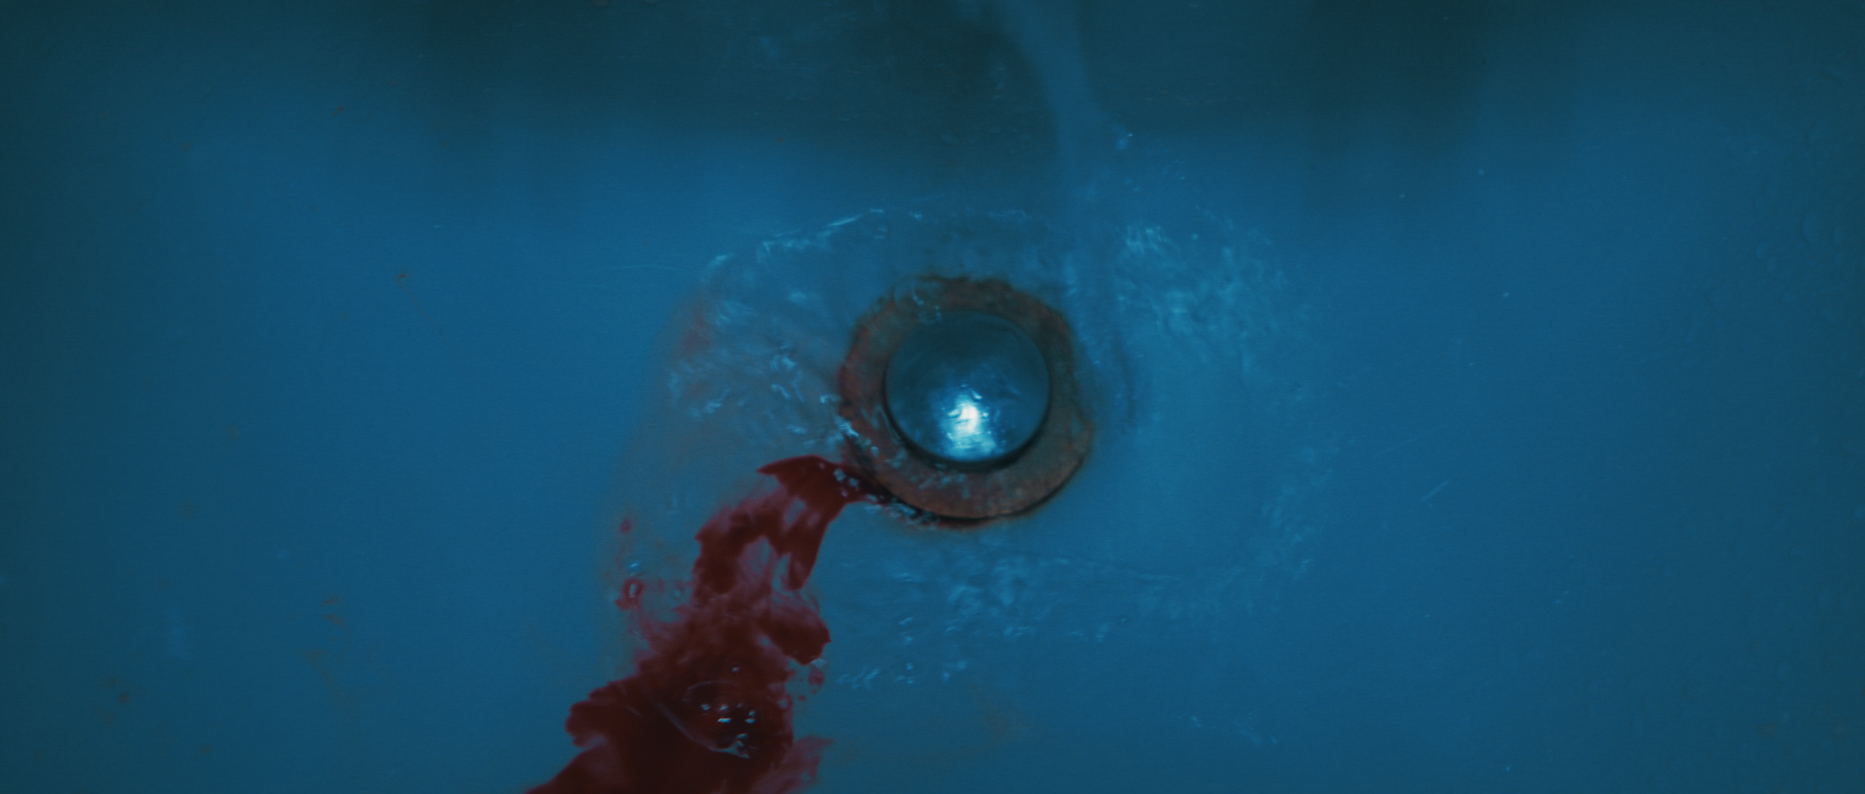 1-CCL_Gretchen_Blood down drain.JPG